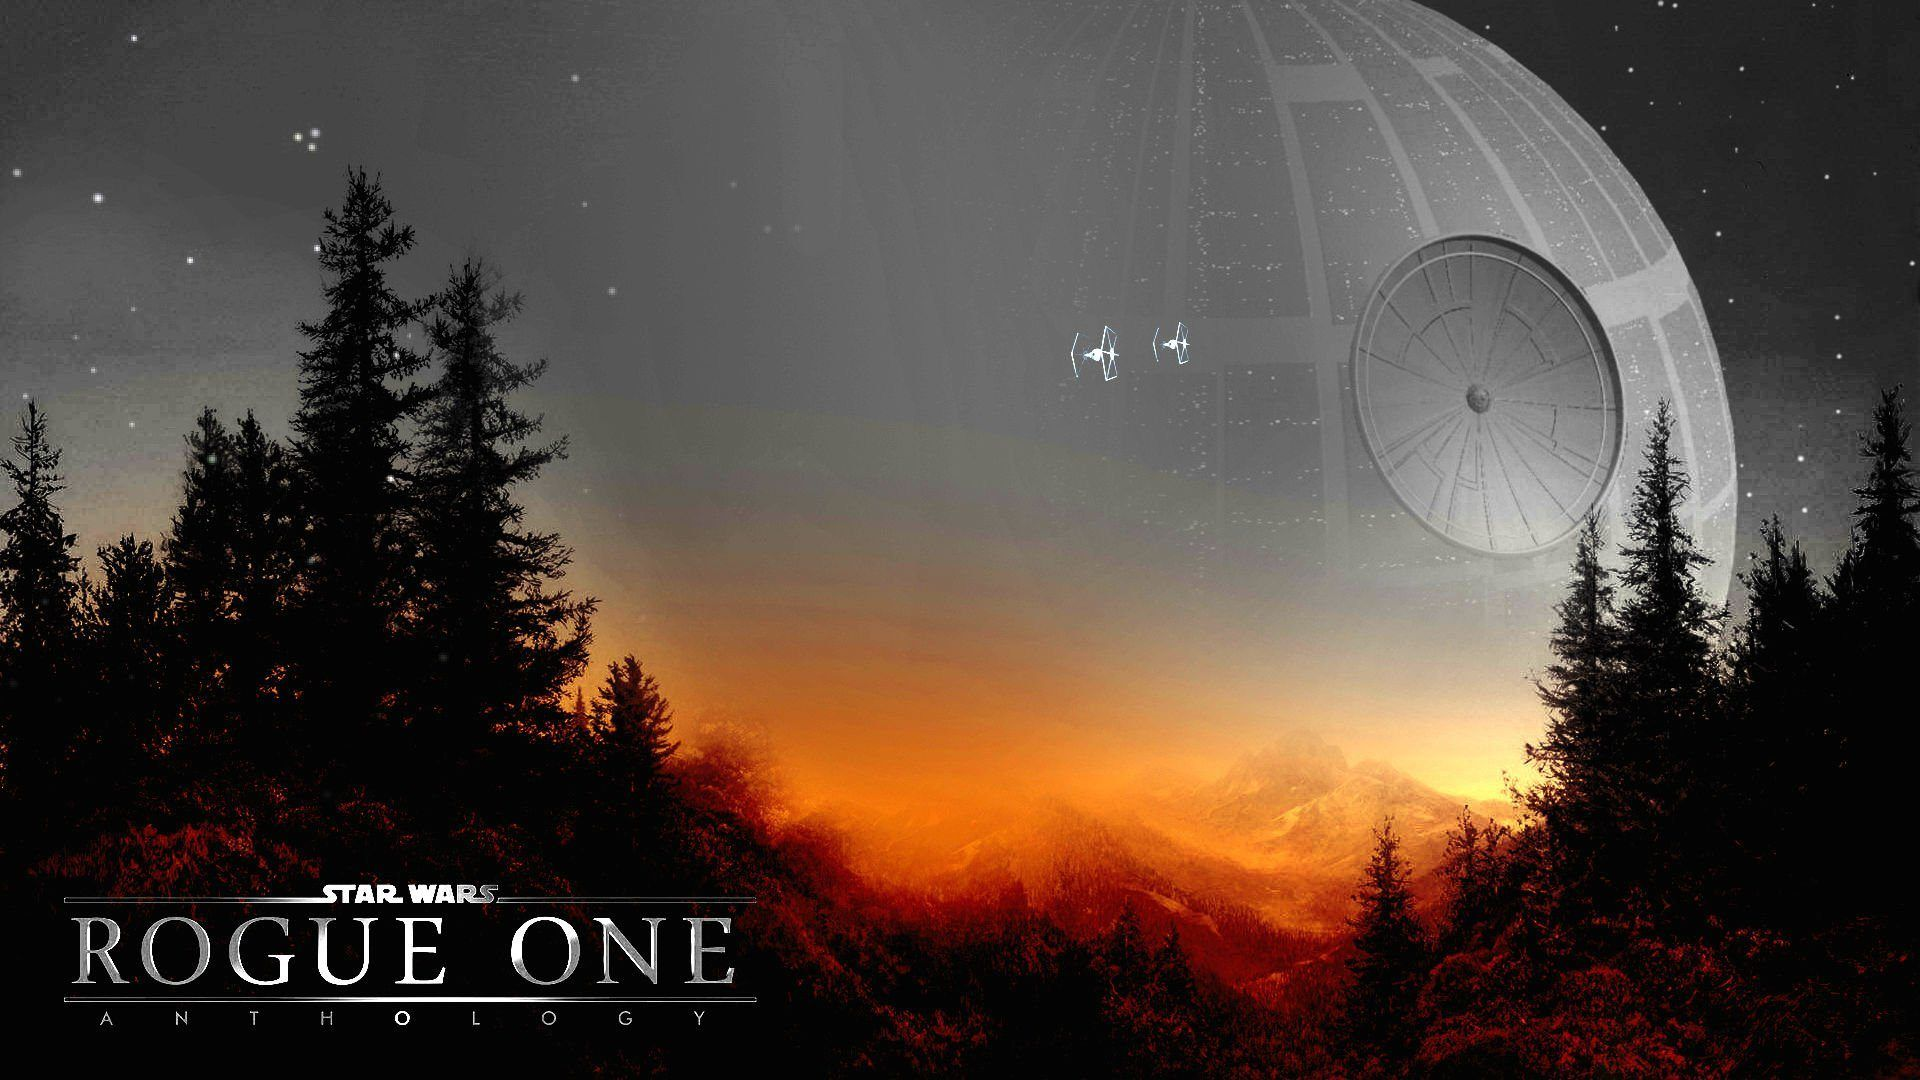 Star Wars Rogue One Wallpaper Just For You Hd Wallpaper From